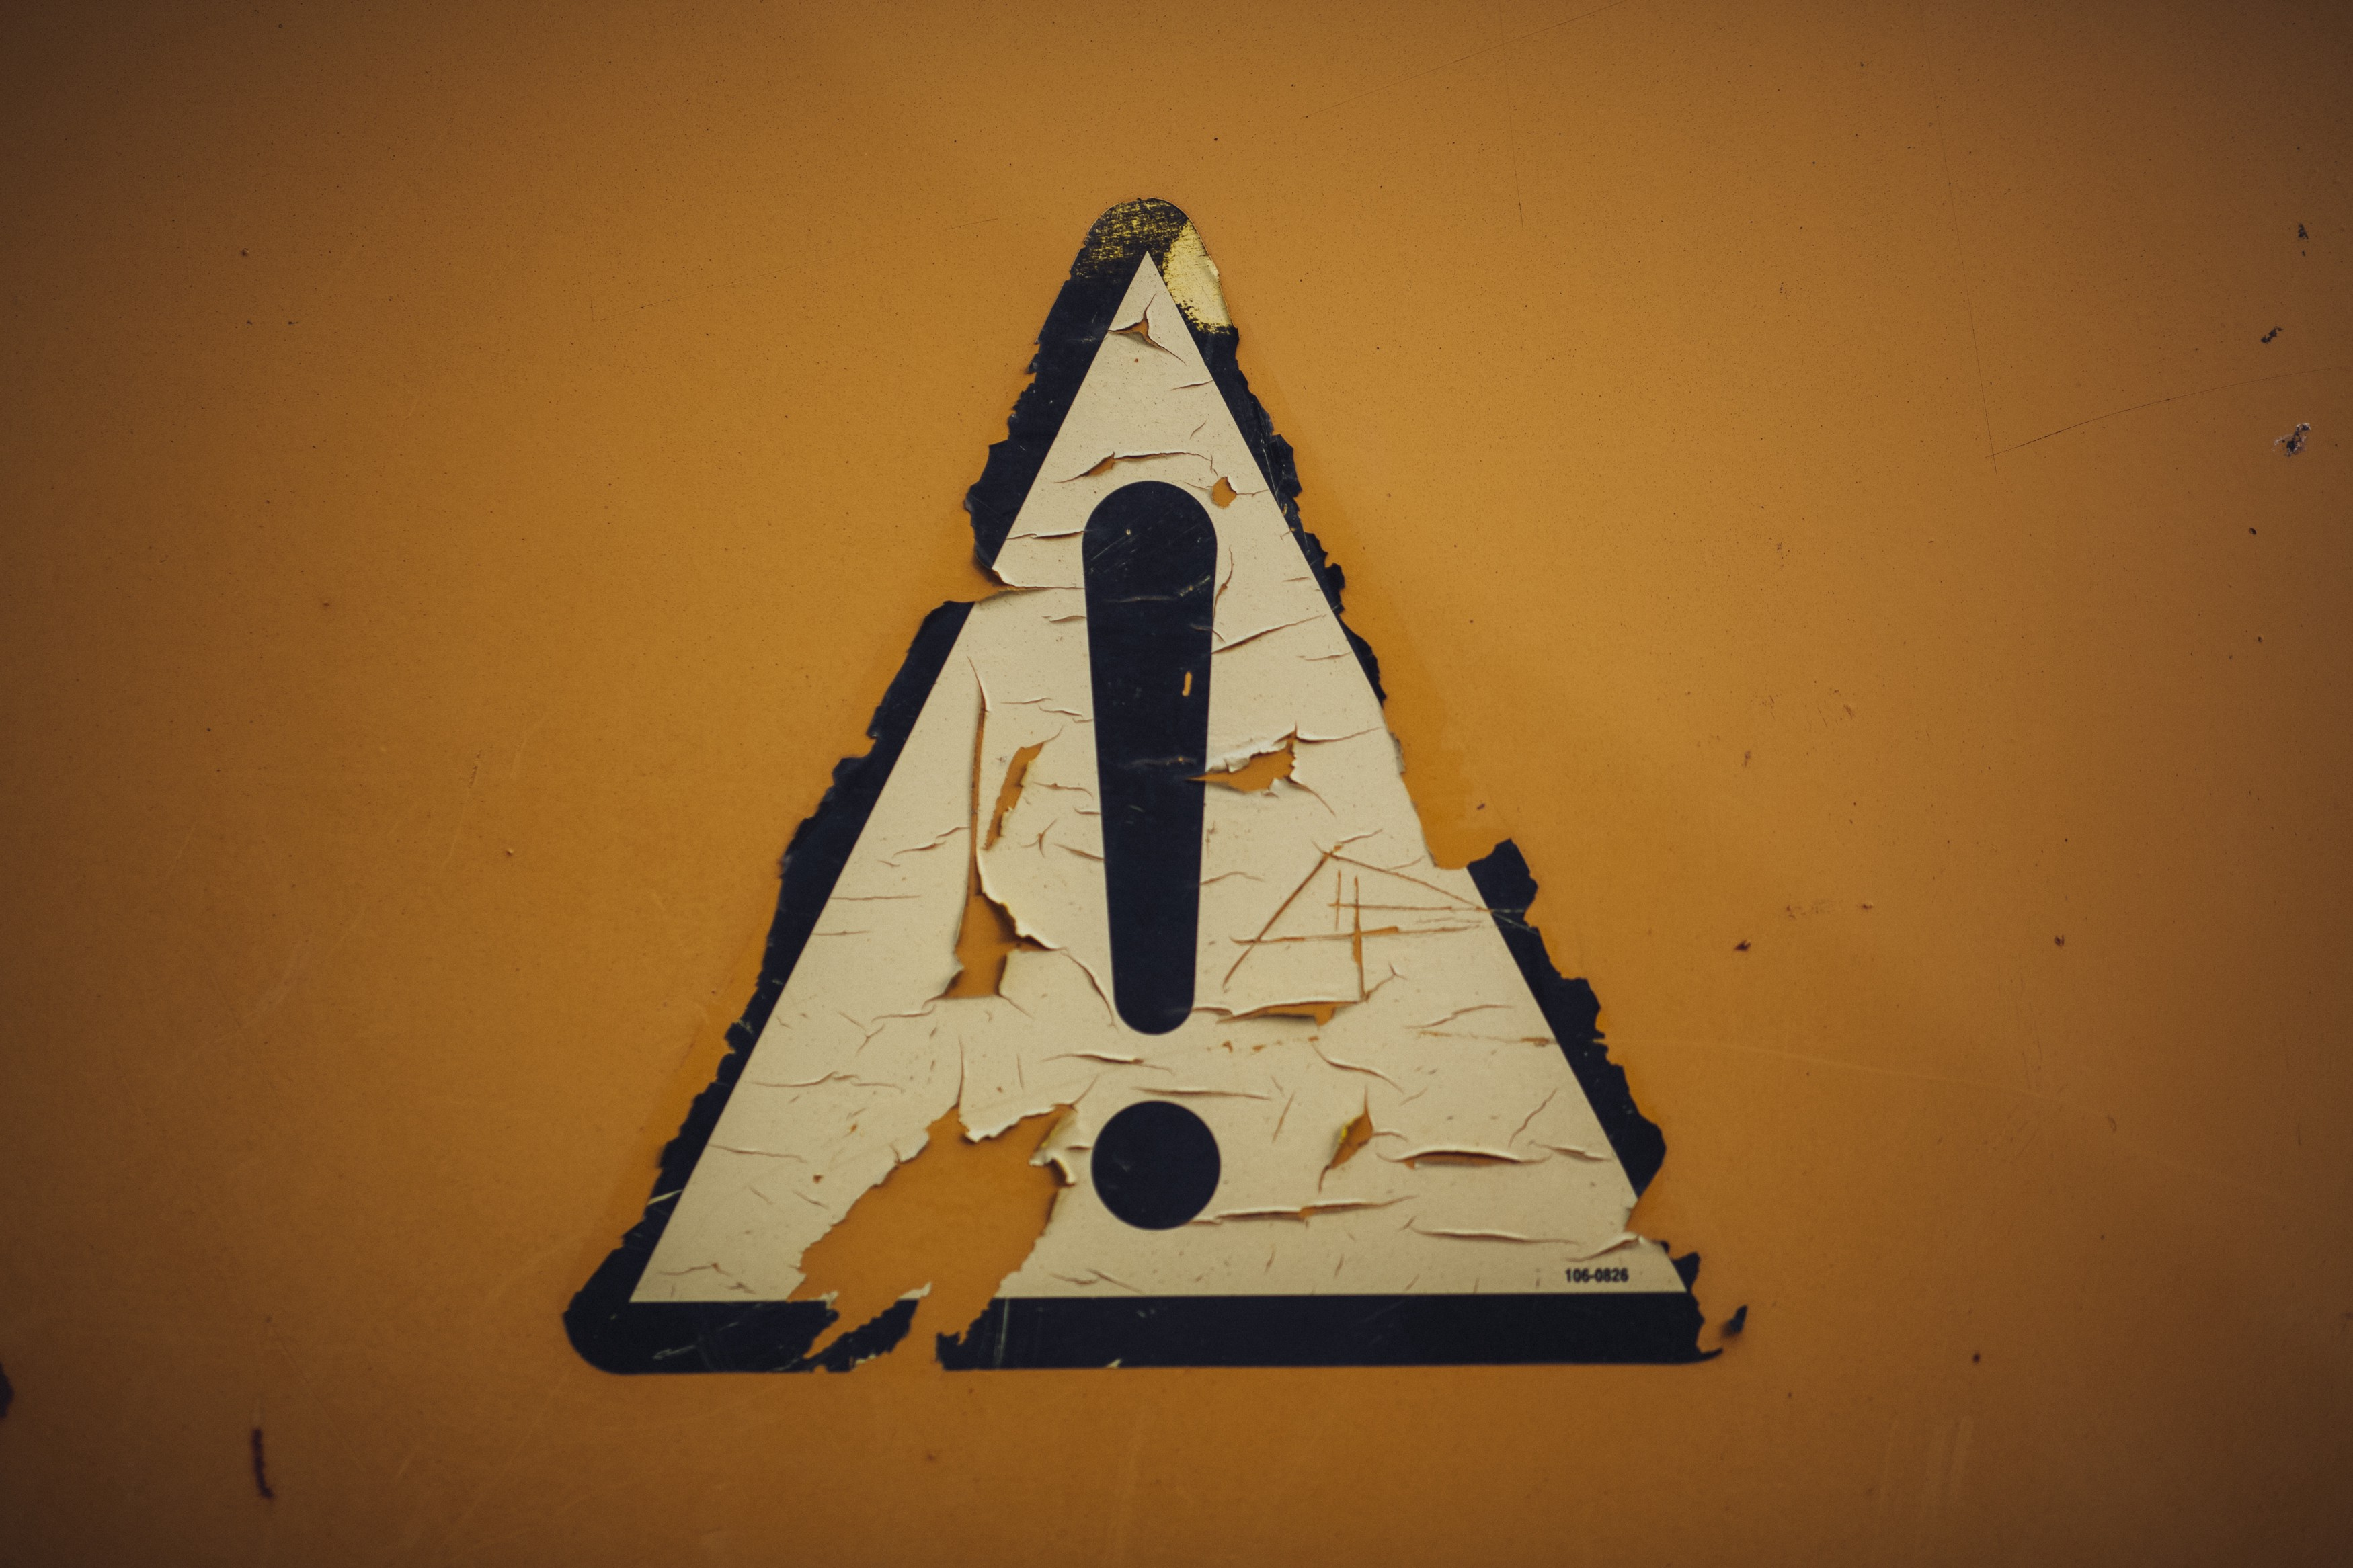 A tattered caution sign